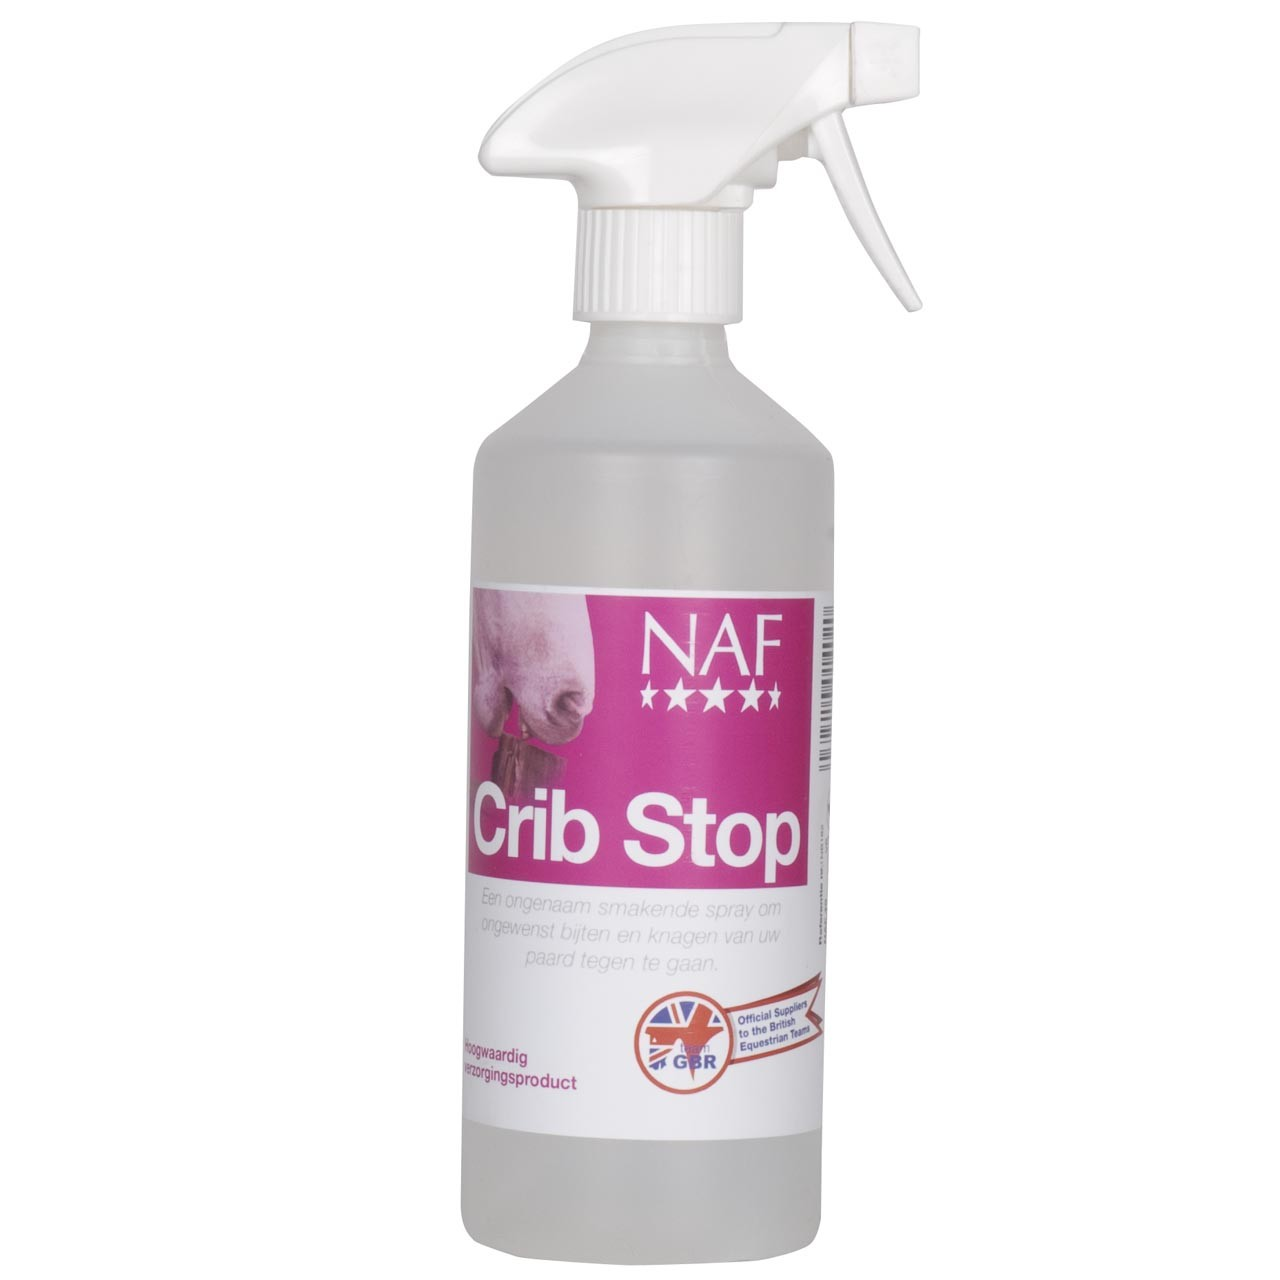 NAF Crib Stop spray